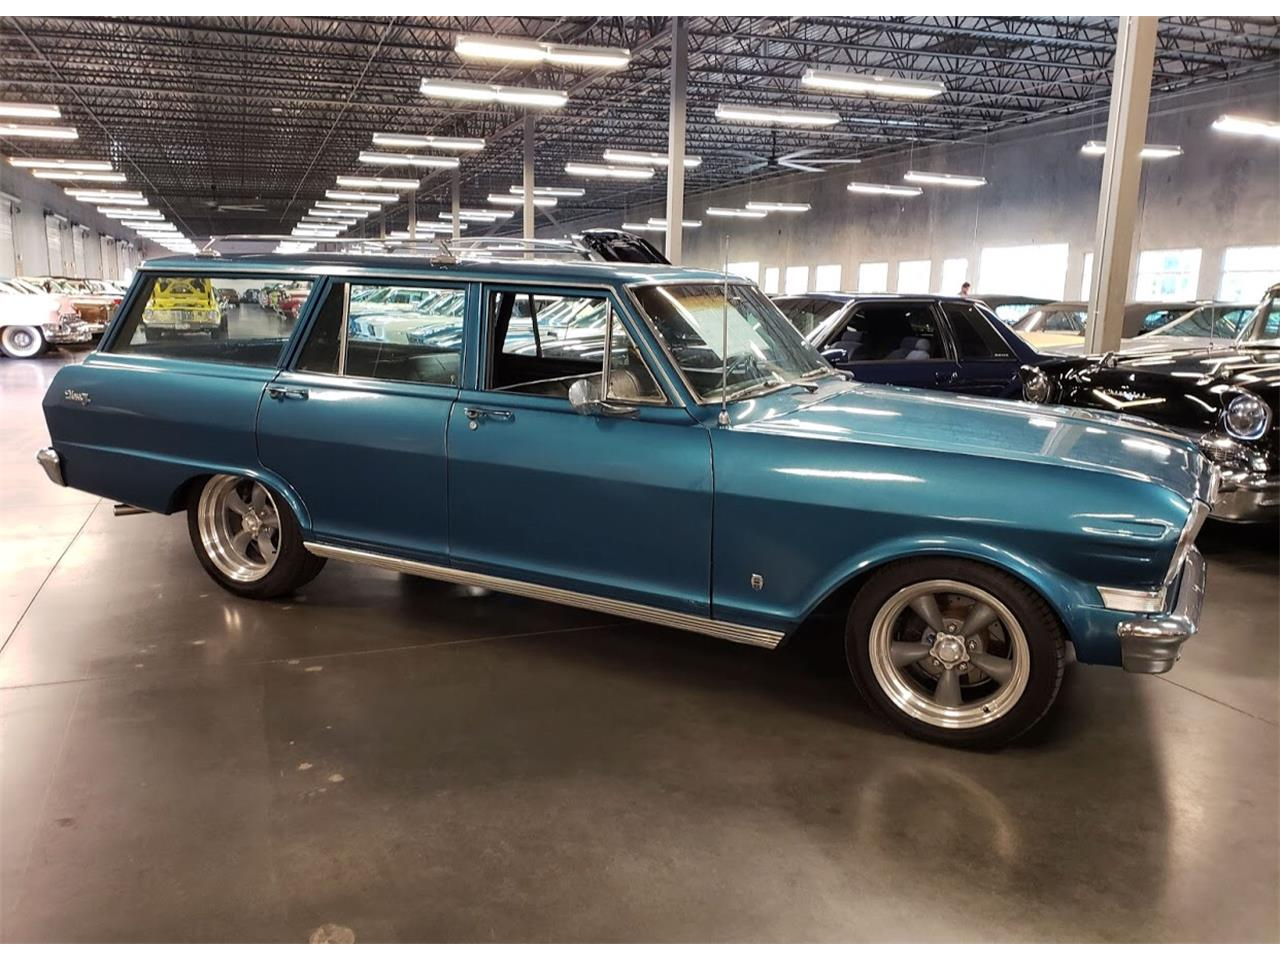 Large Picture of '63 Chevrolet Nova located in Oregon - $24,500.00 - Q6YJ